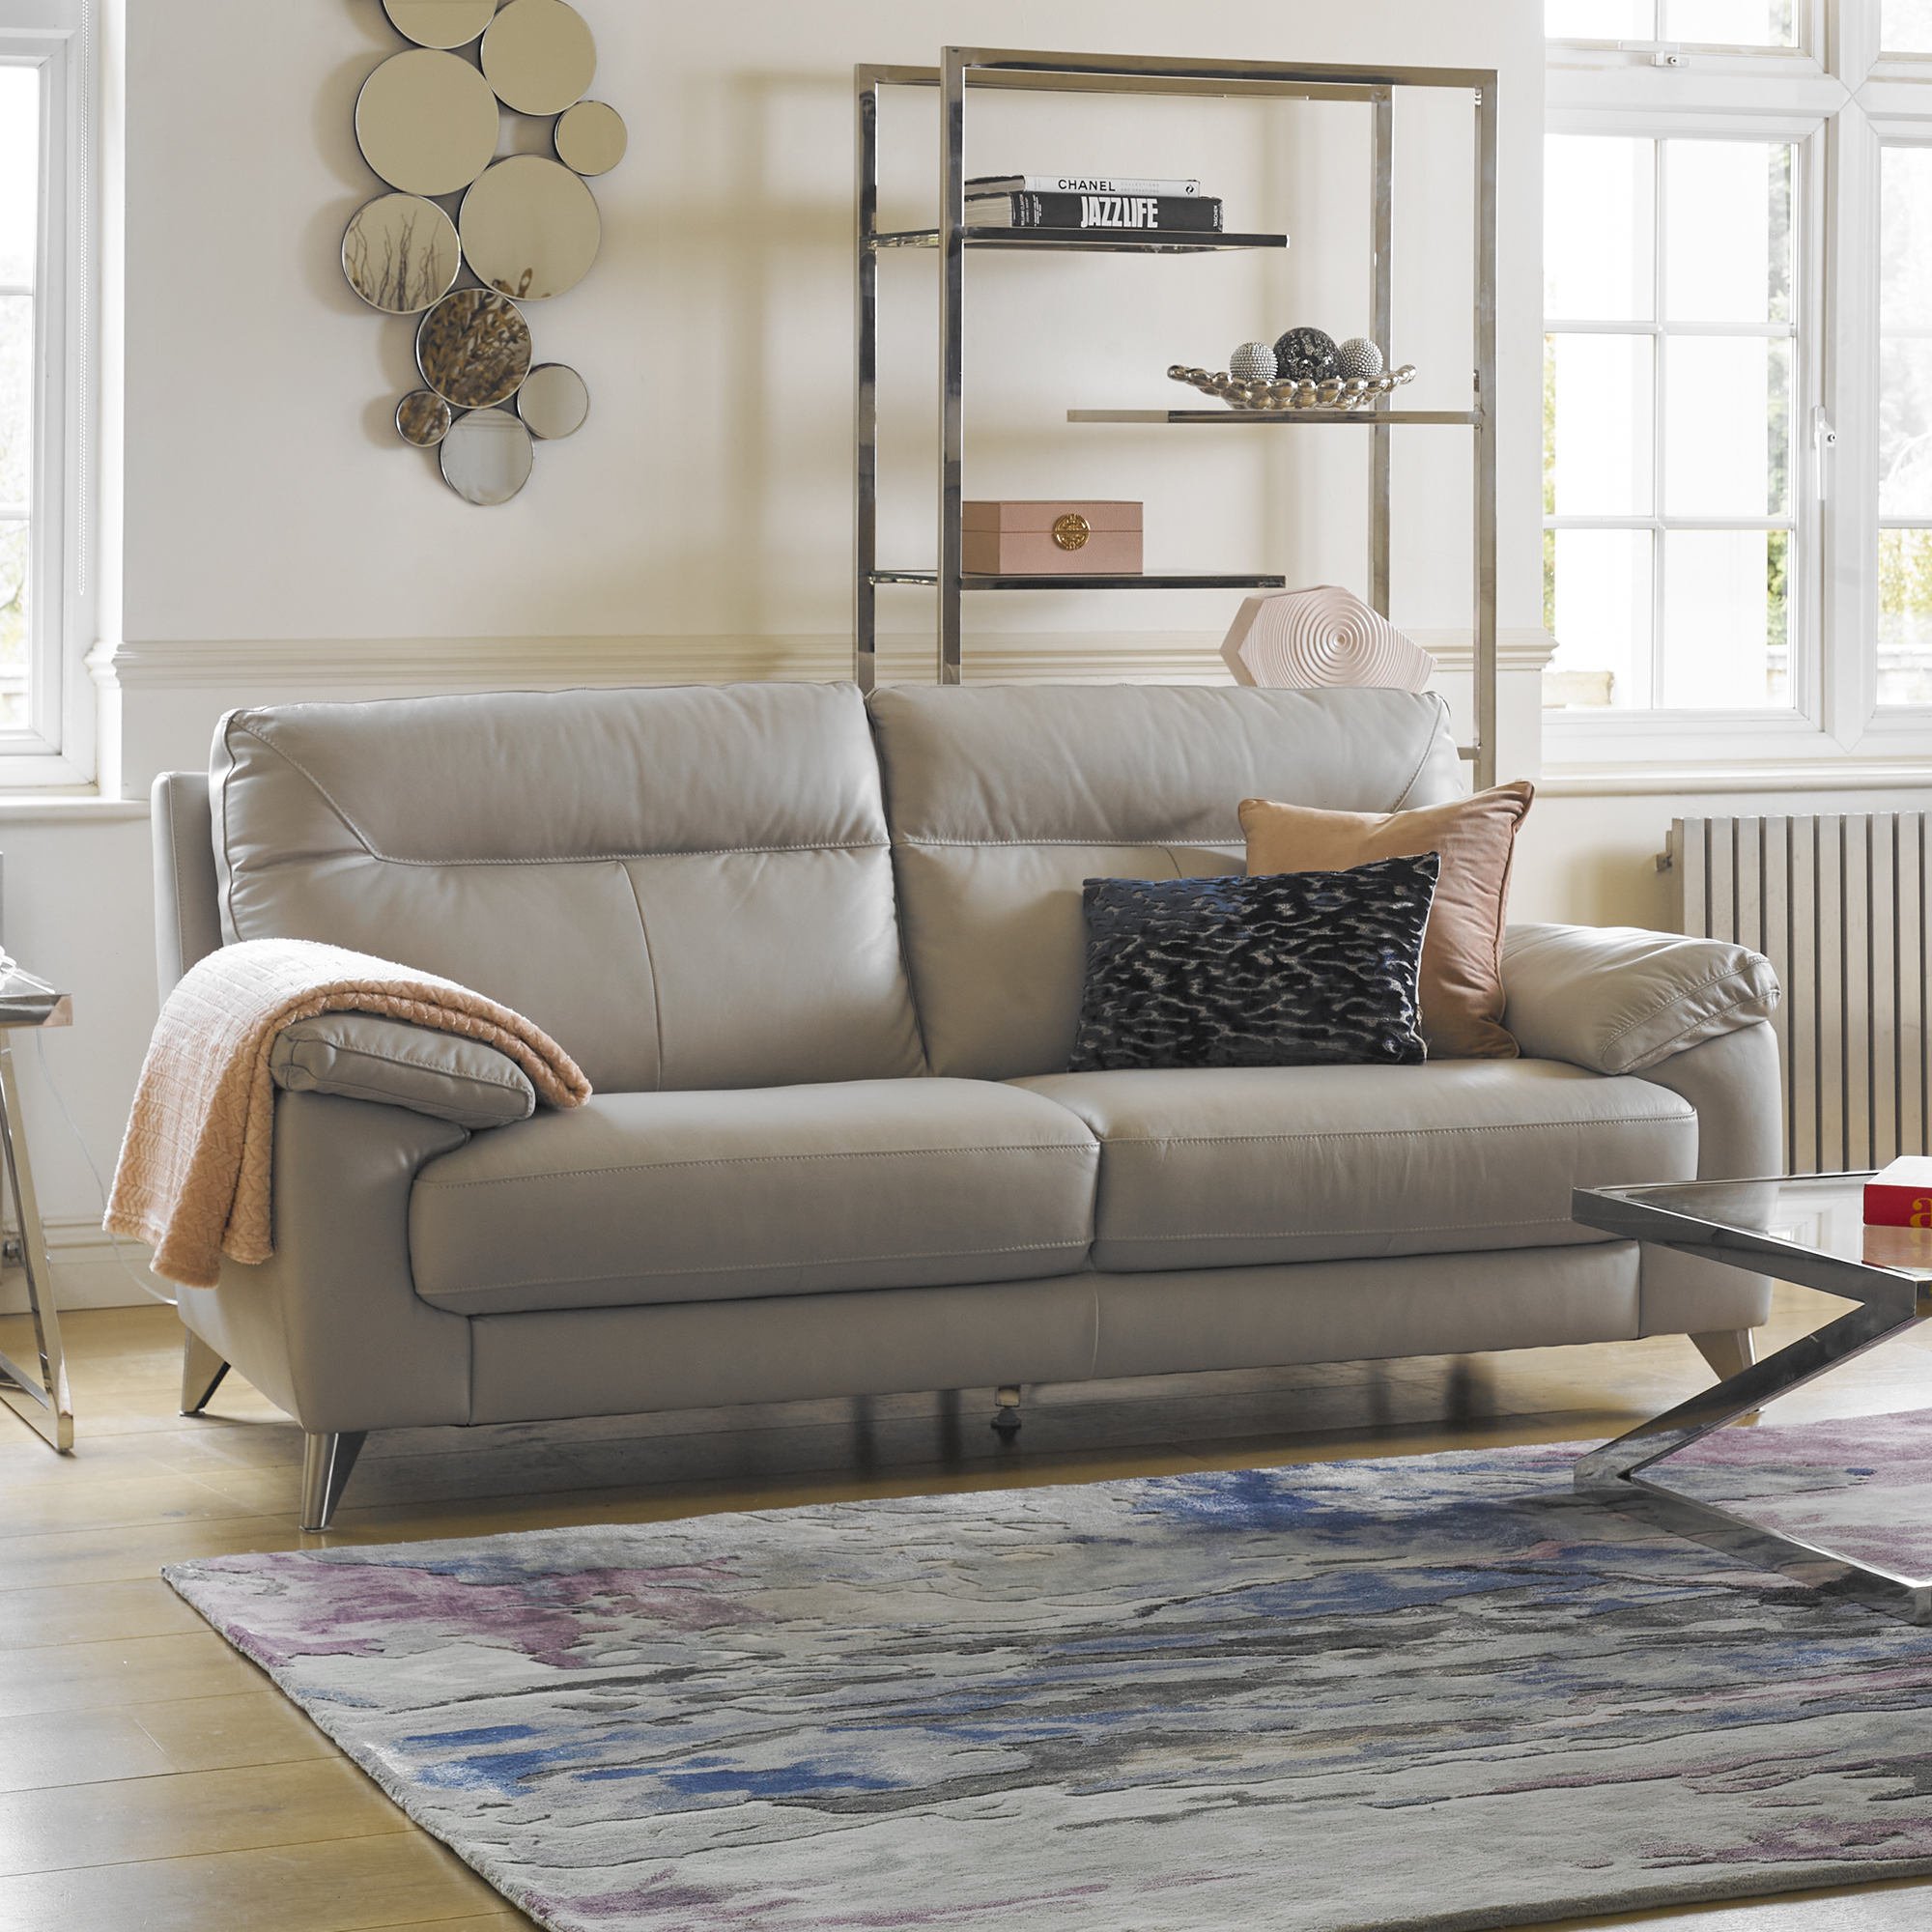 Lecce - 3 Seat Sofa In Leather Cat 13 M/Split M/S 3010 Dove